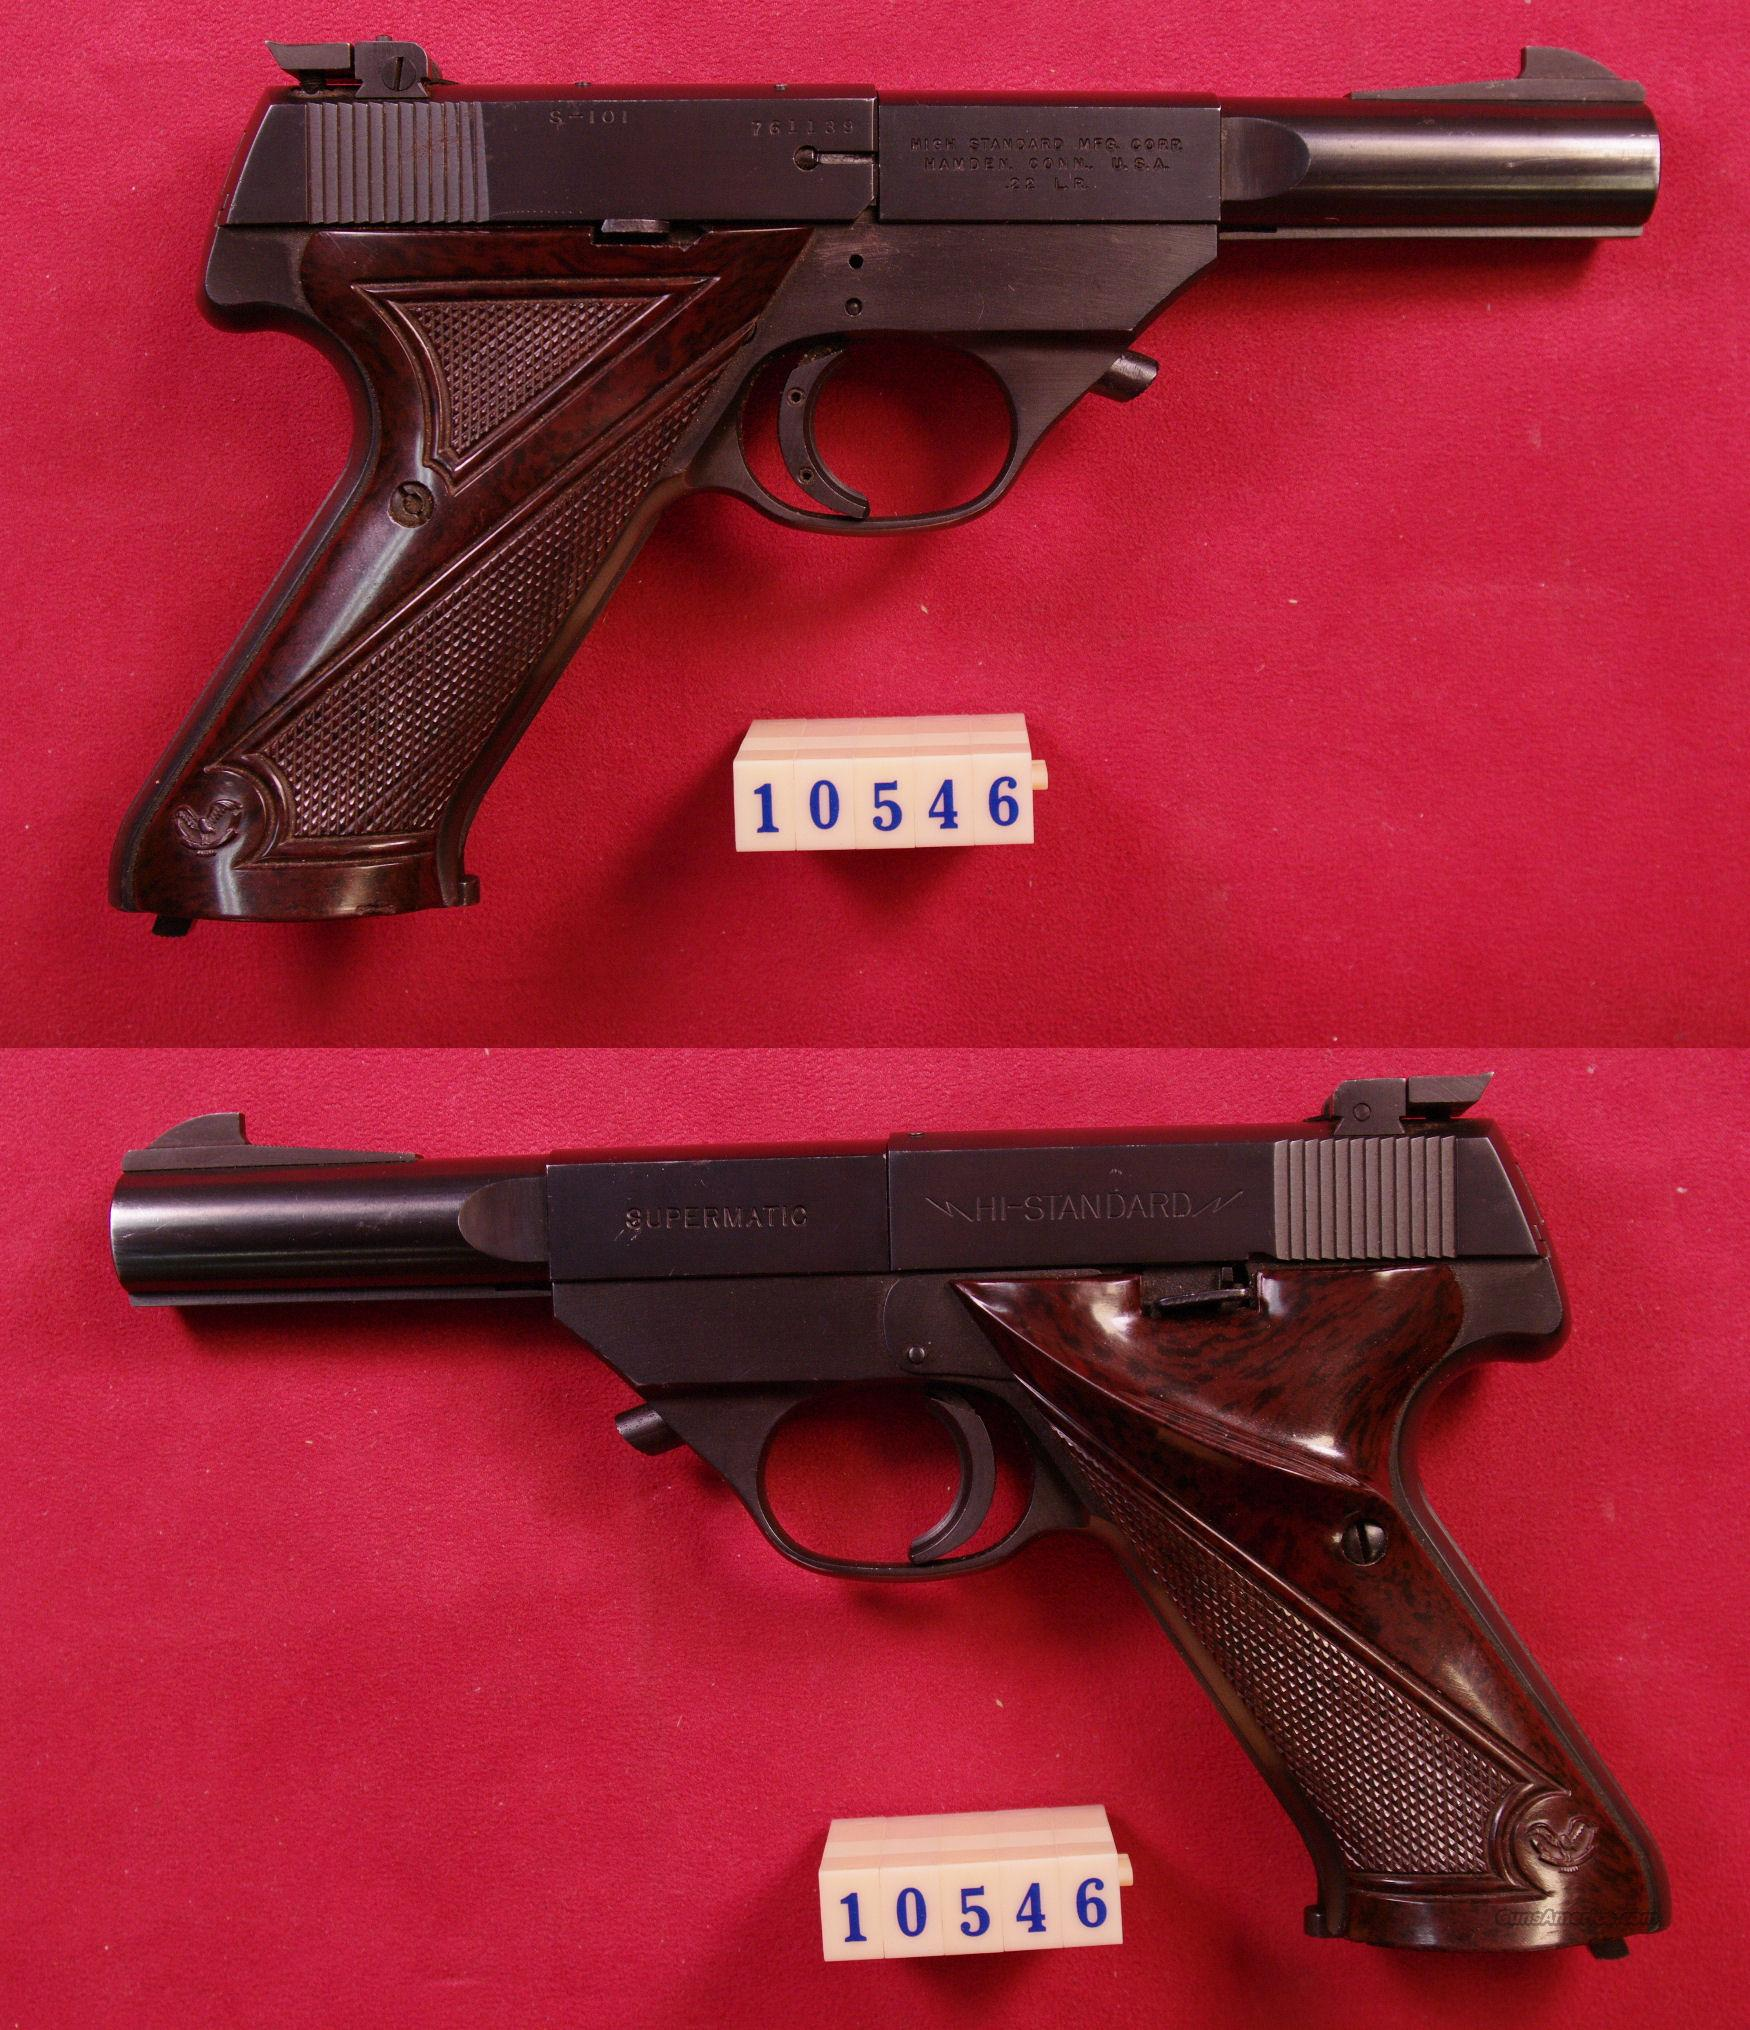 Hi-Standard S-101 .22 LR *MUST CALL*  Guns > Pistols > High Standard Pistols